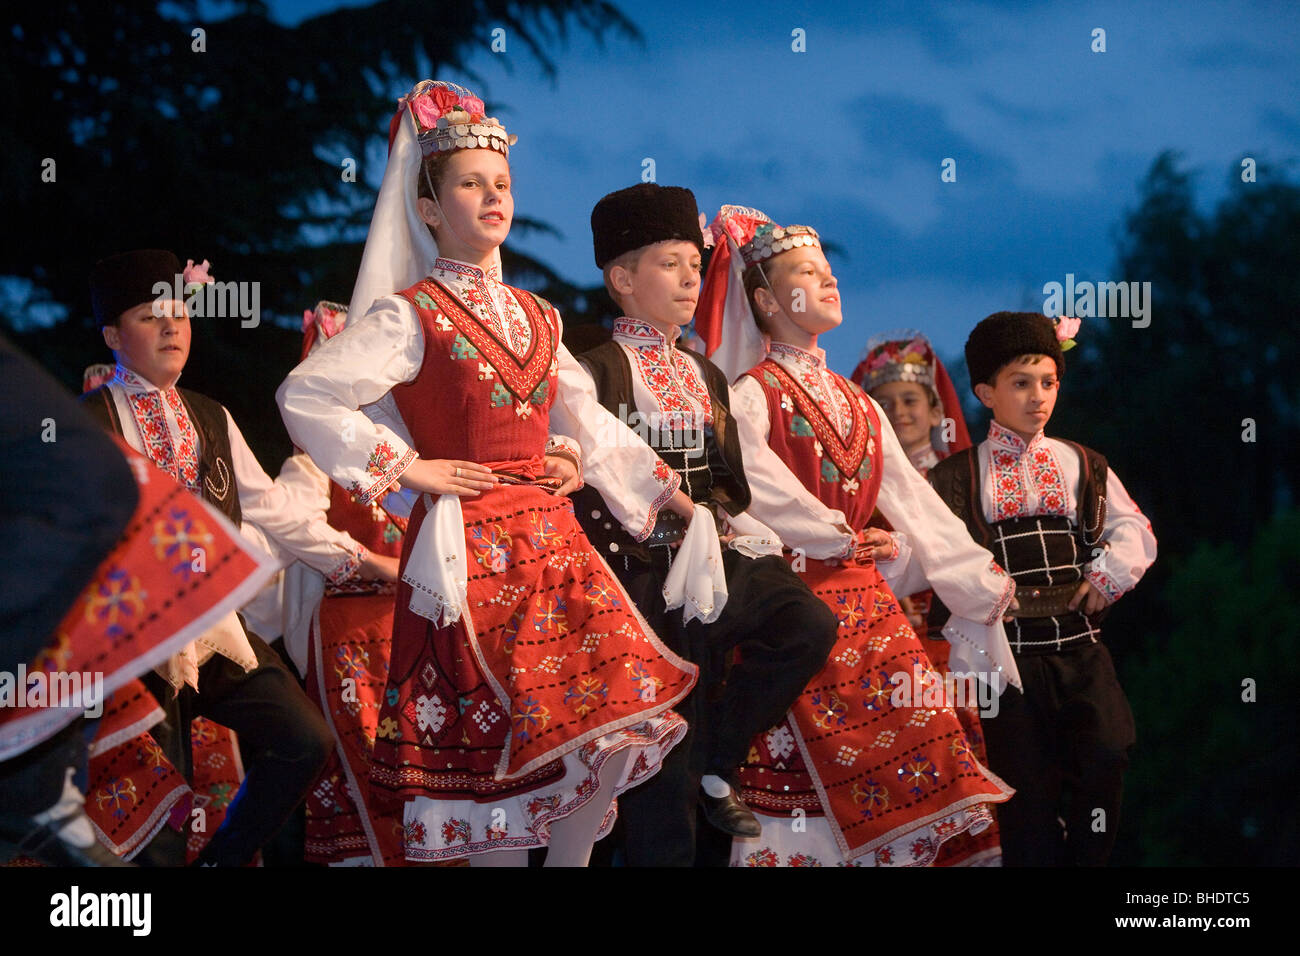 Bulgaria,Kazanlak,Festival of the Roses,Traditional clothing,Folklore Costumes - Stock Image